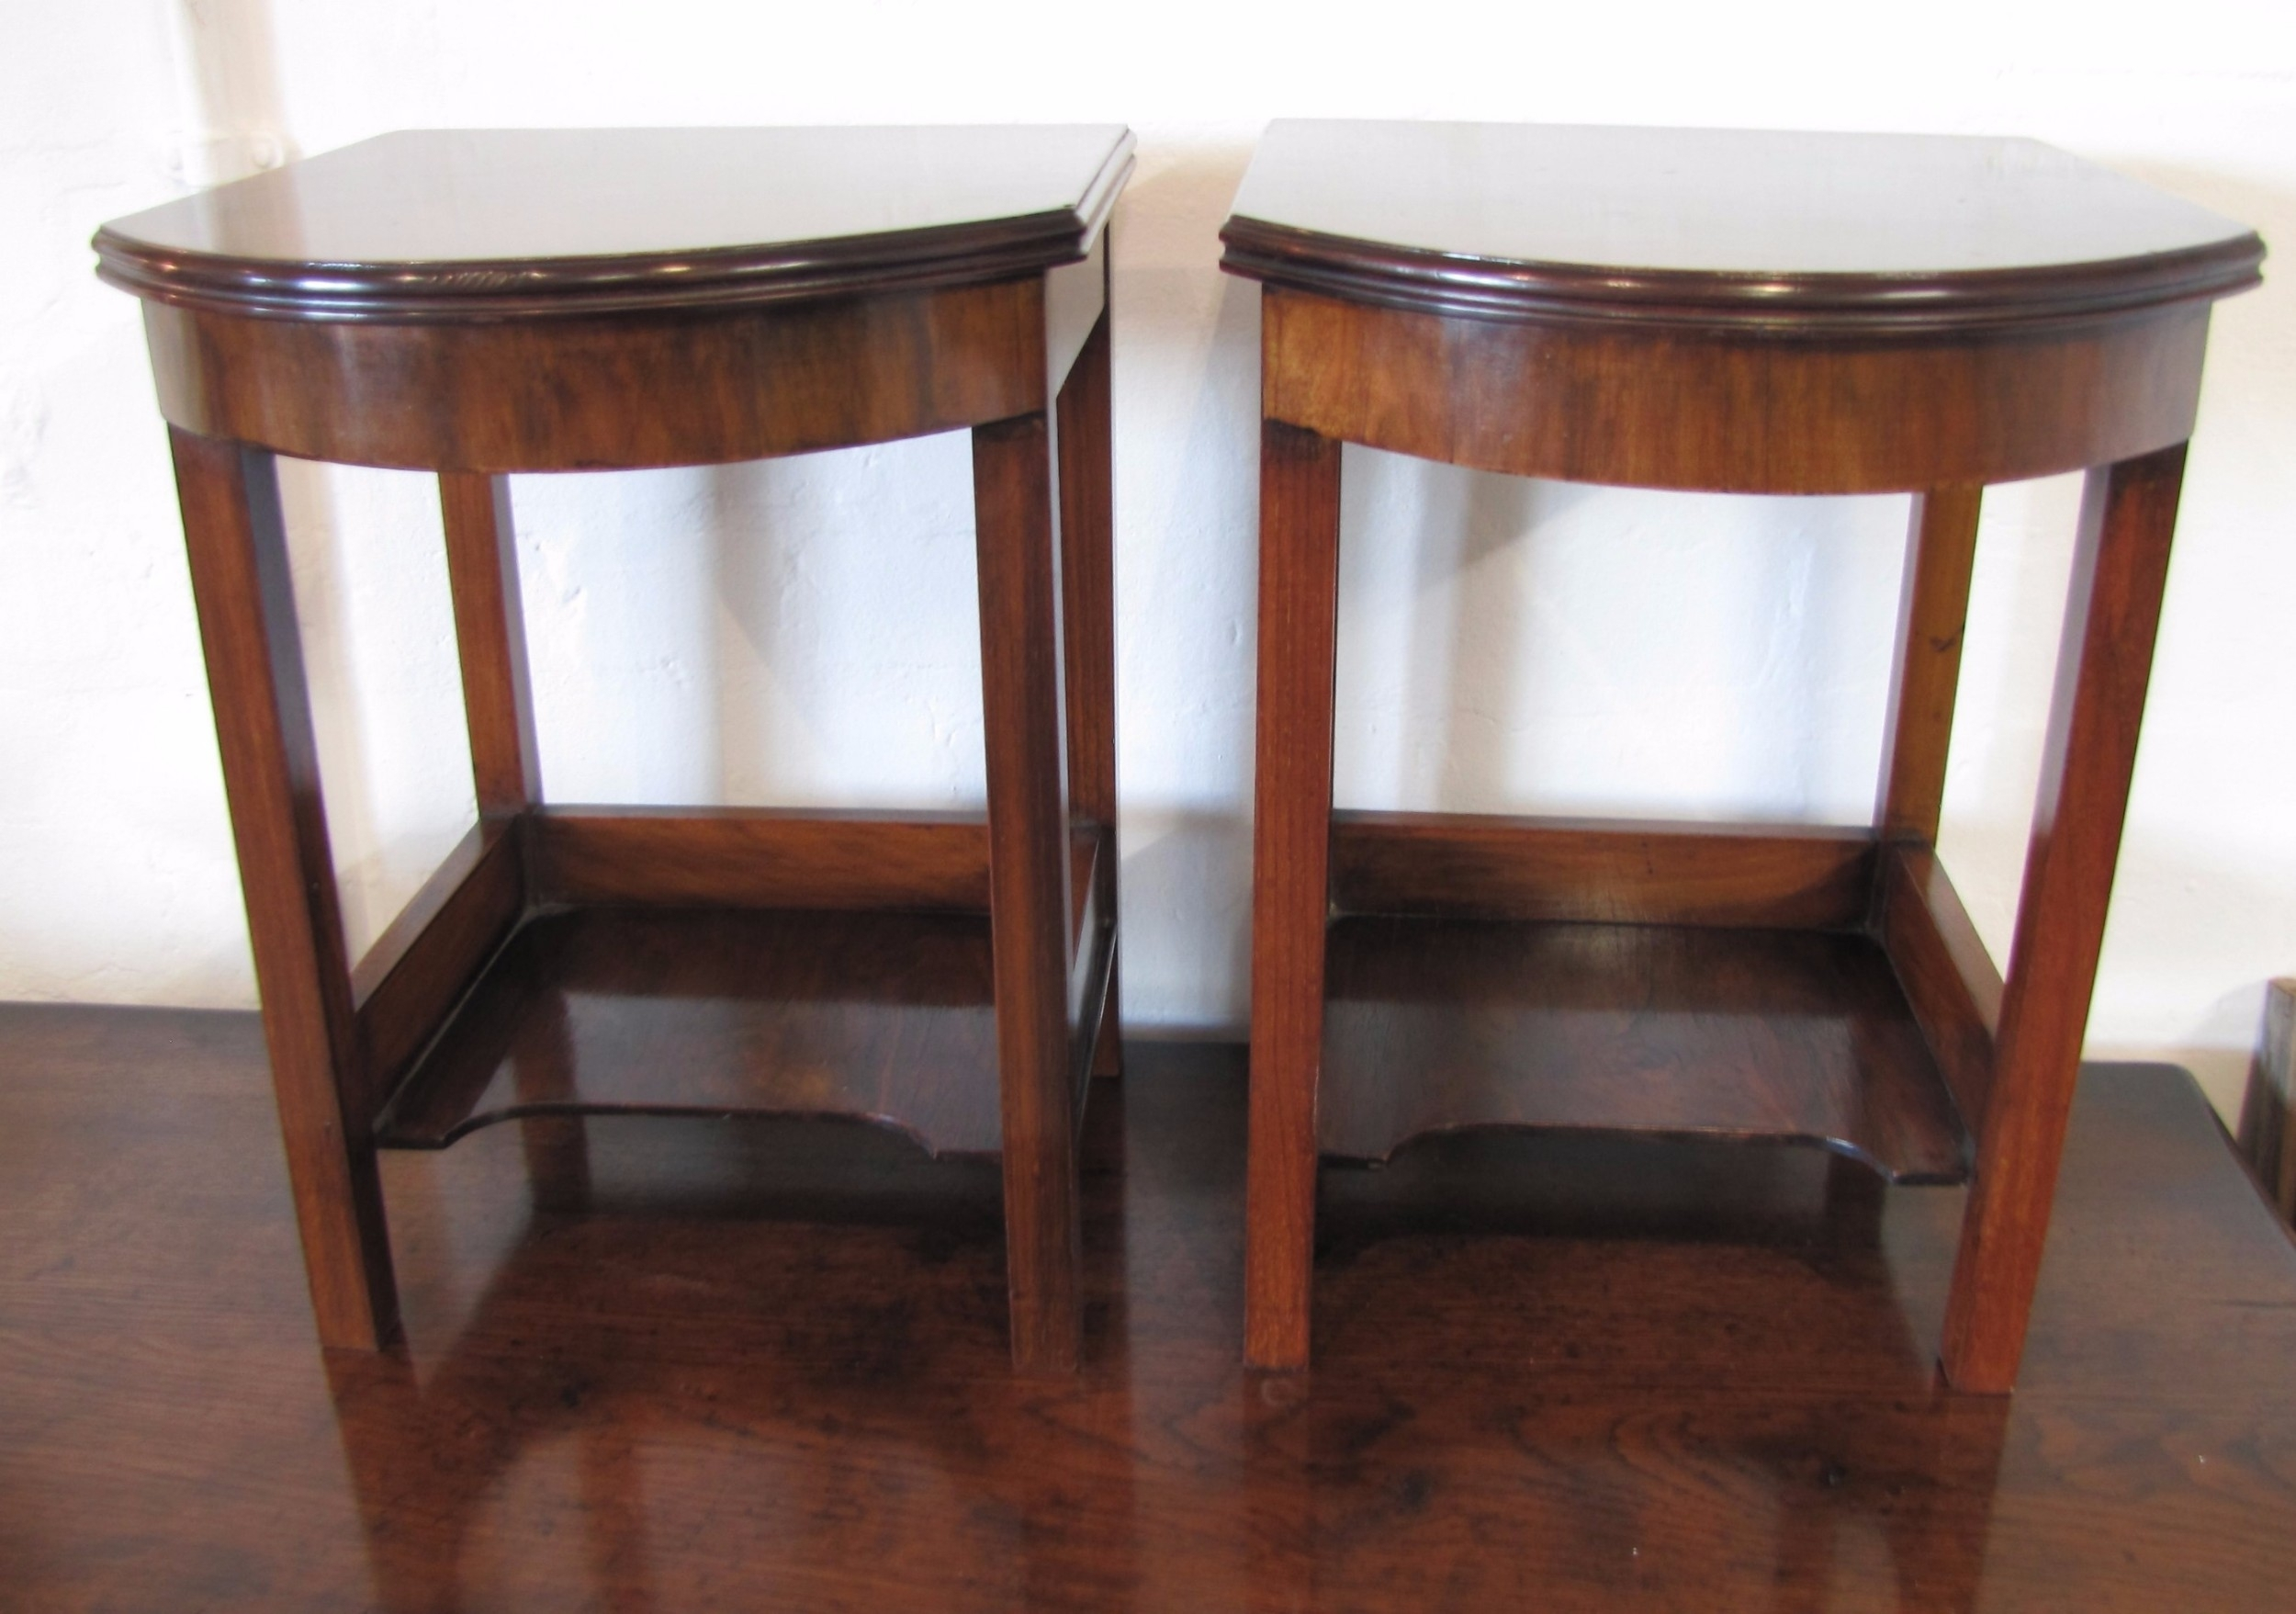 Pair Of Art Deco Side Tables | 507526 | Sellingantiques.co.uk with Antiqued Art Deco Coffee Tables (Image 29 of 30)